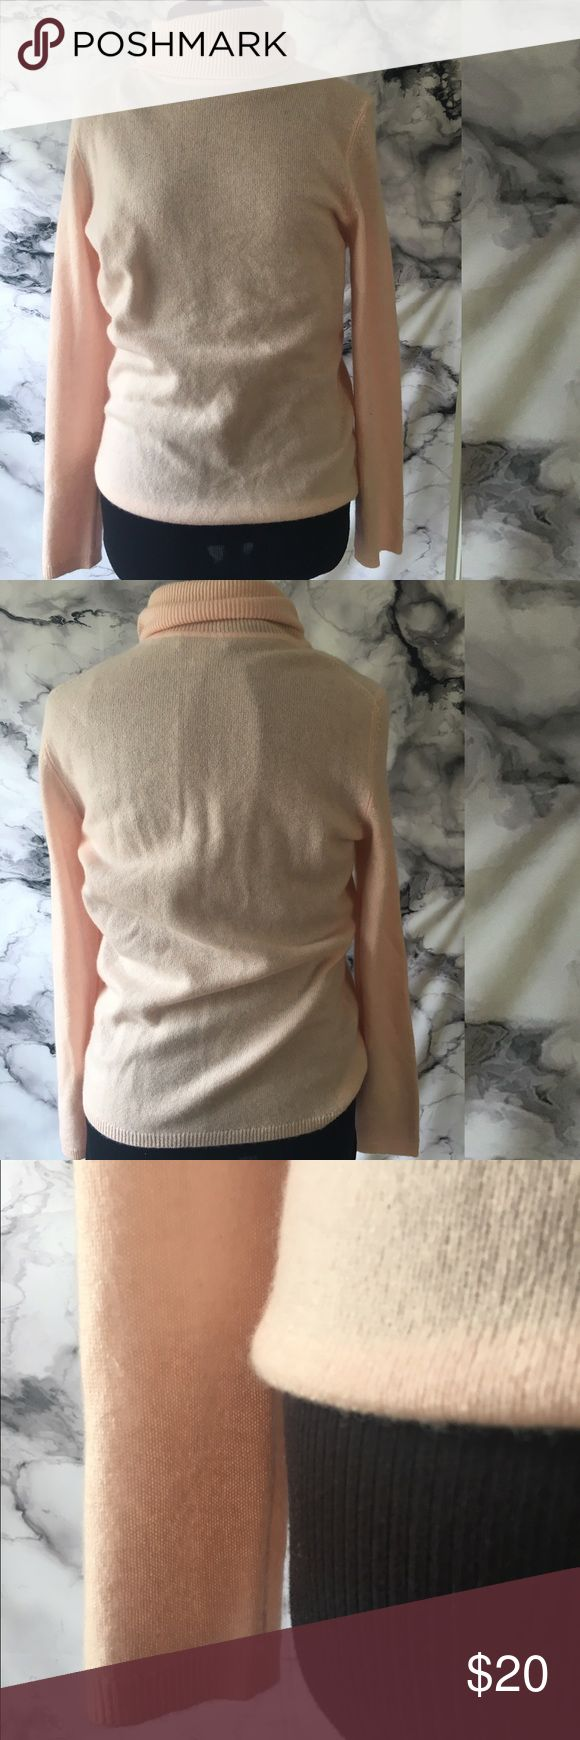 CASHMERE 2 ply by Charter Club Pink Turtleneck Pale Pink soft and a get minimal staple. Size Small. Please see pics for more details Charter Club Tops